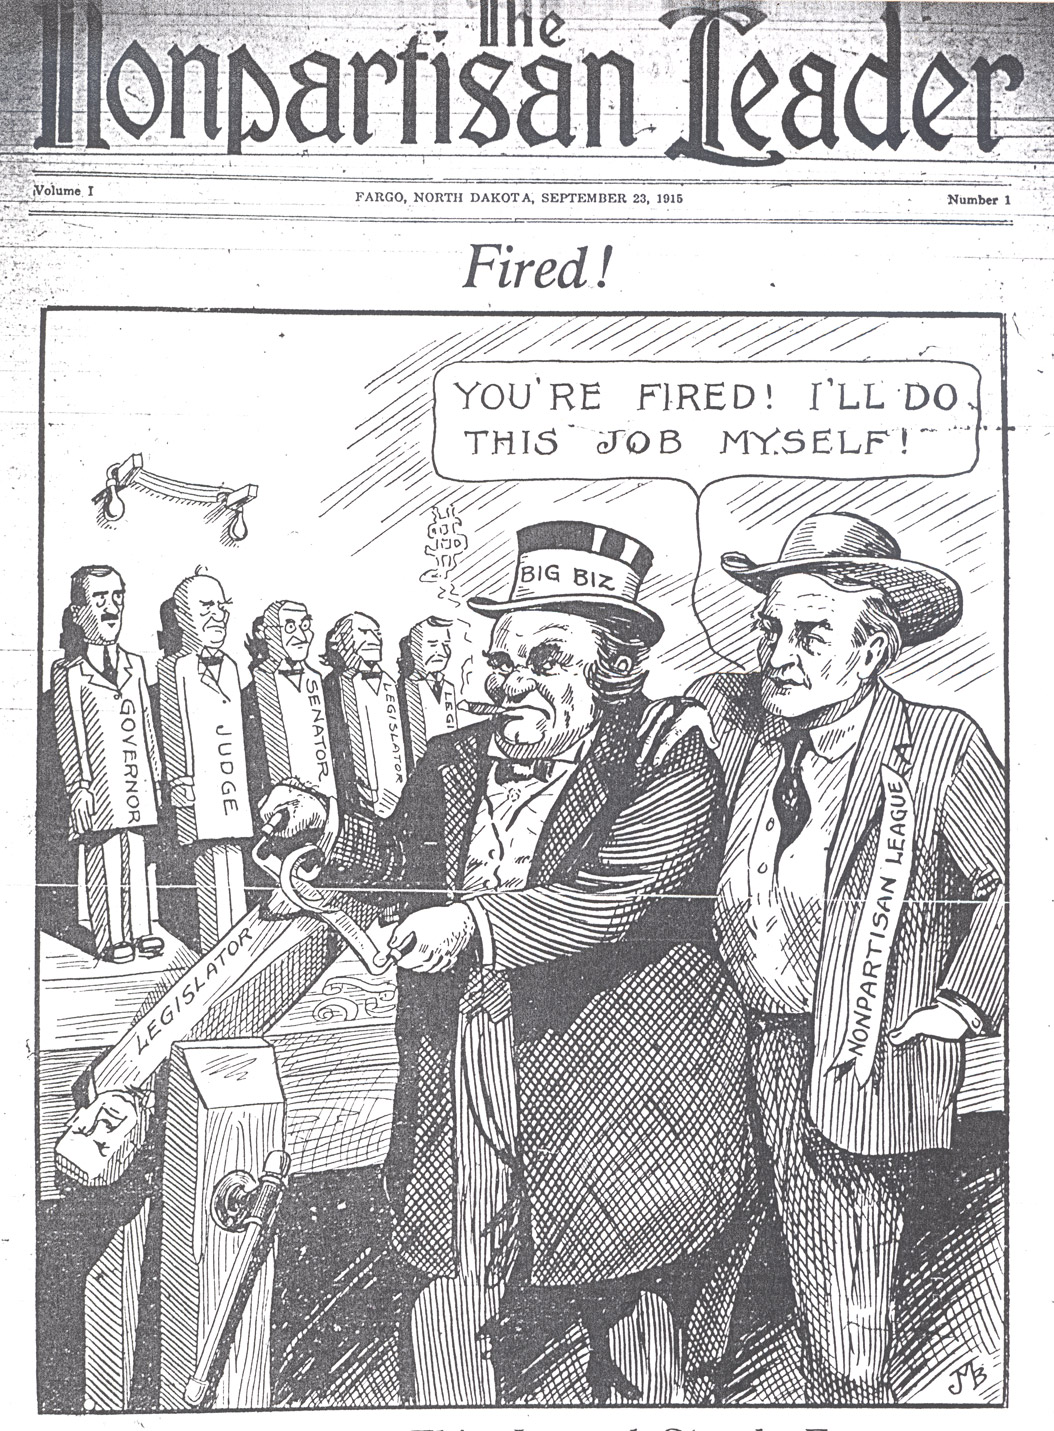 John M. Baer's illustrated character from the first issue of the Nonpartisan Leader